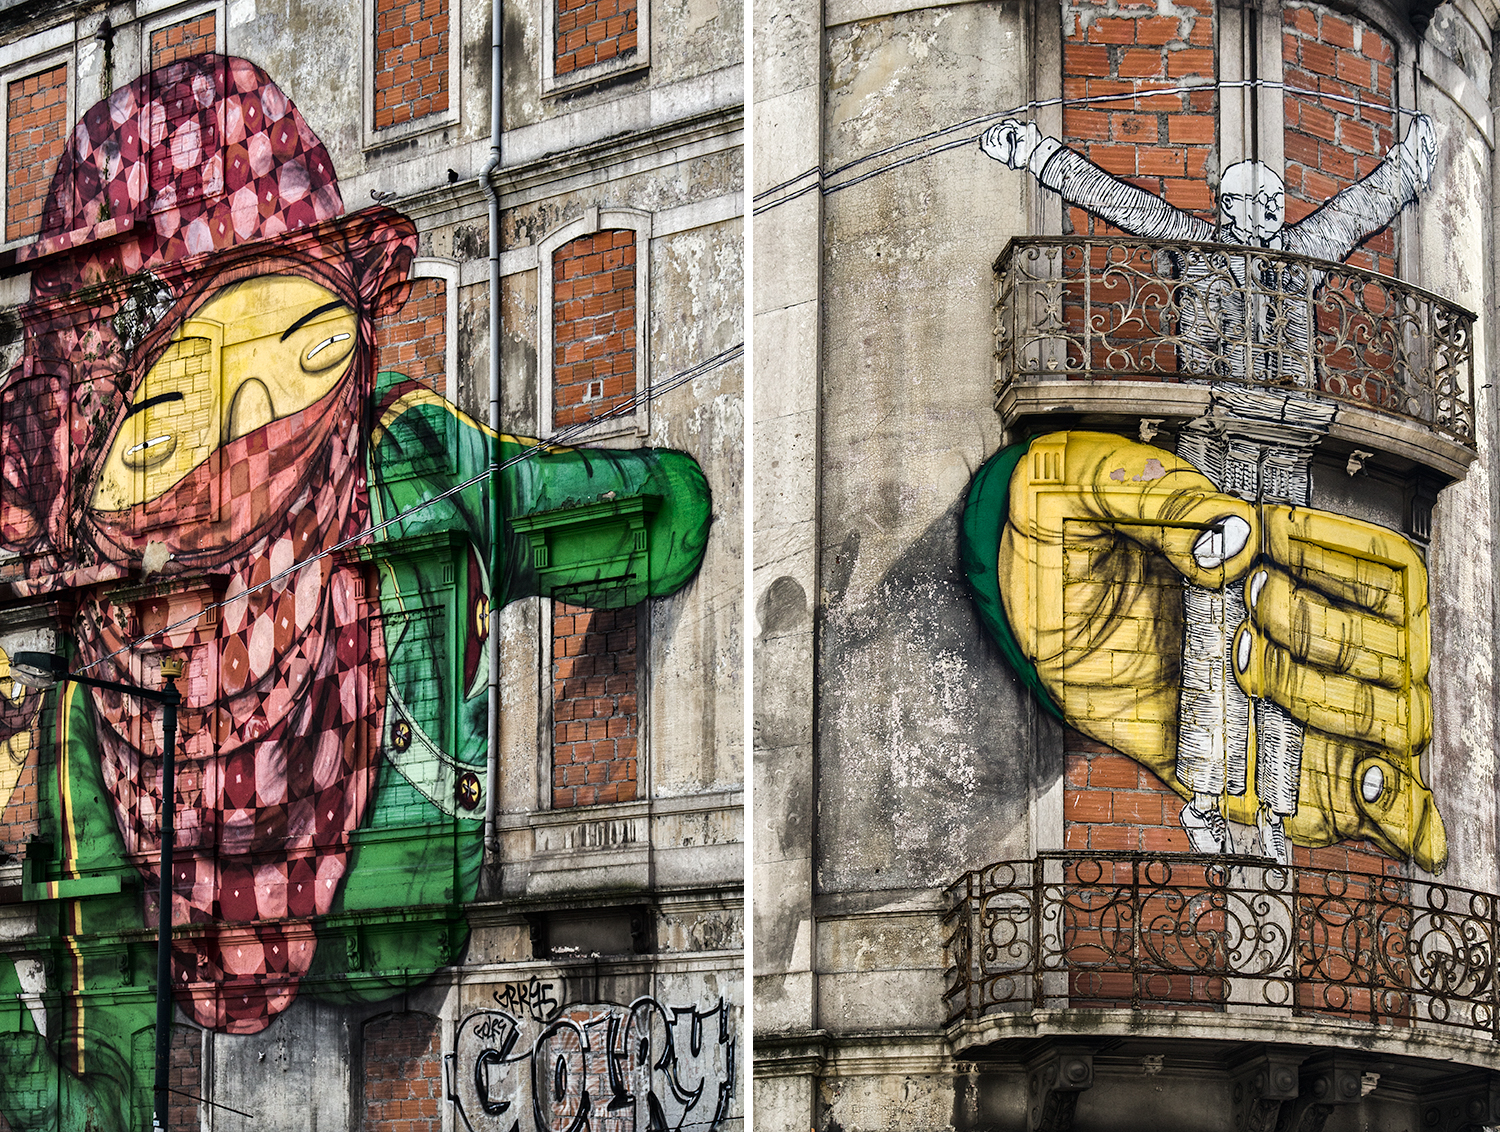 Lisbon sightseeing with Lisbon Photo Tour - Street Art